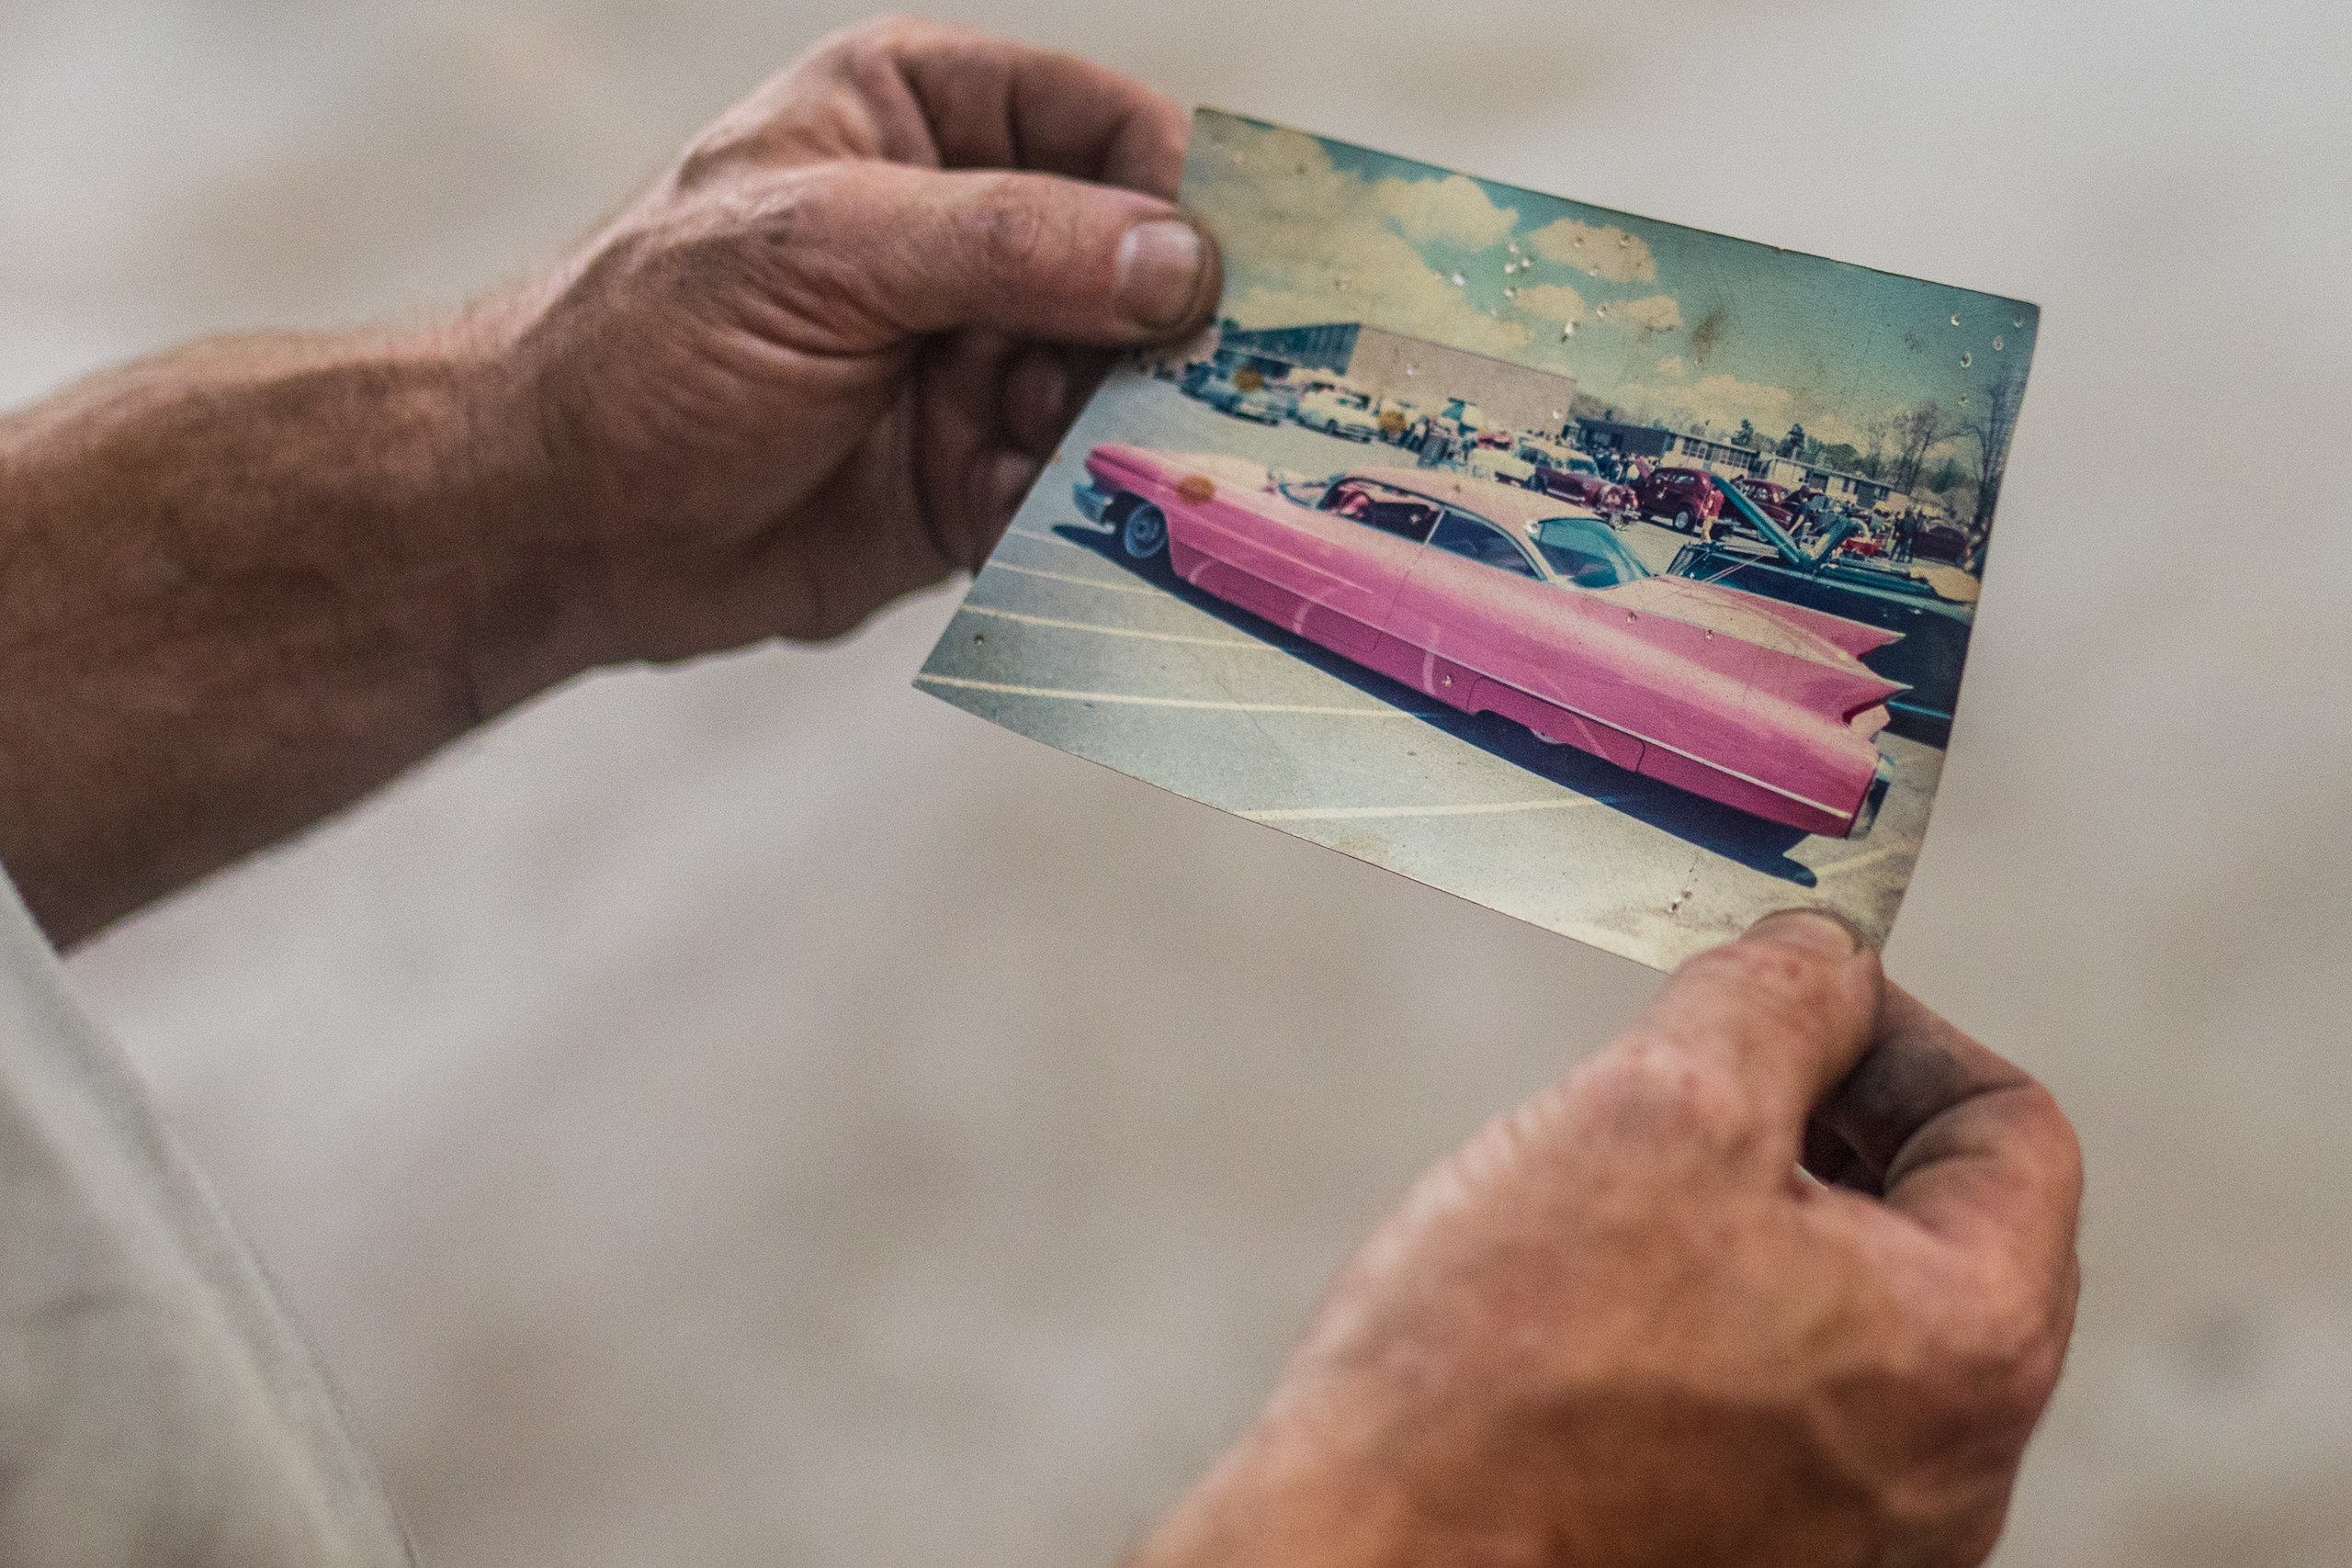 ida holding vintage pink custom hot rod photo